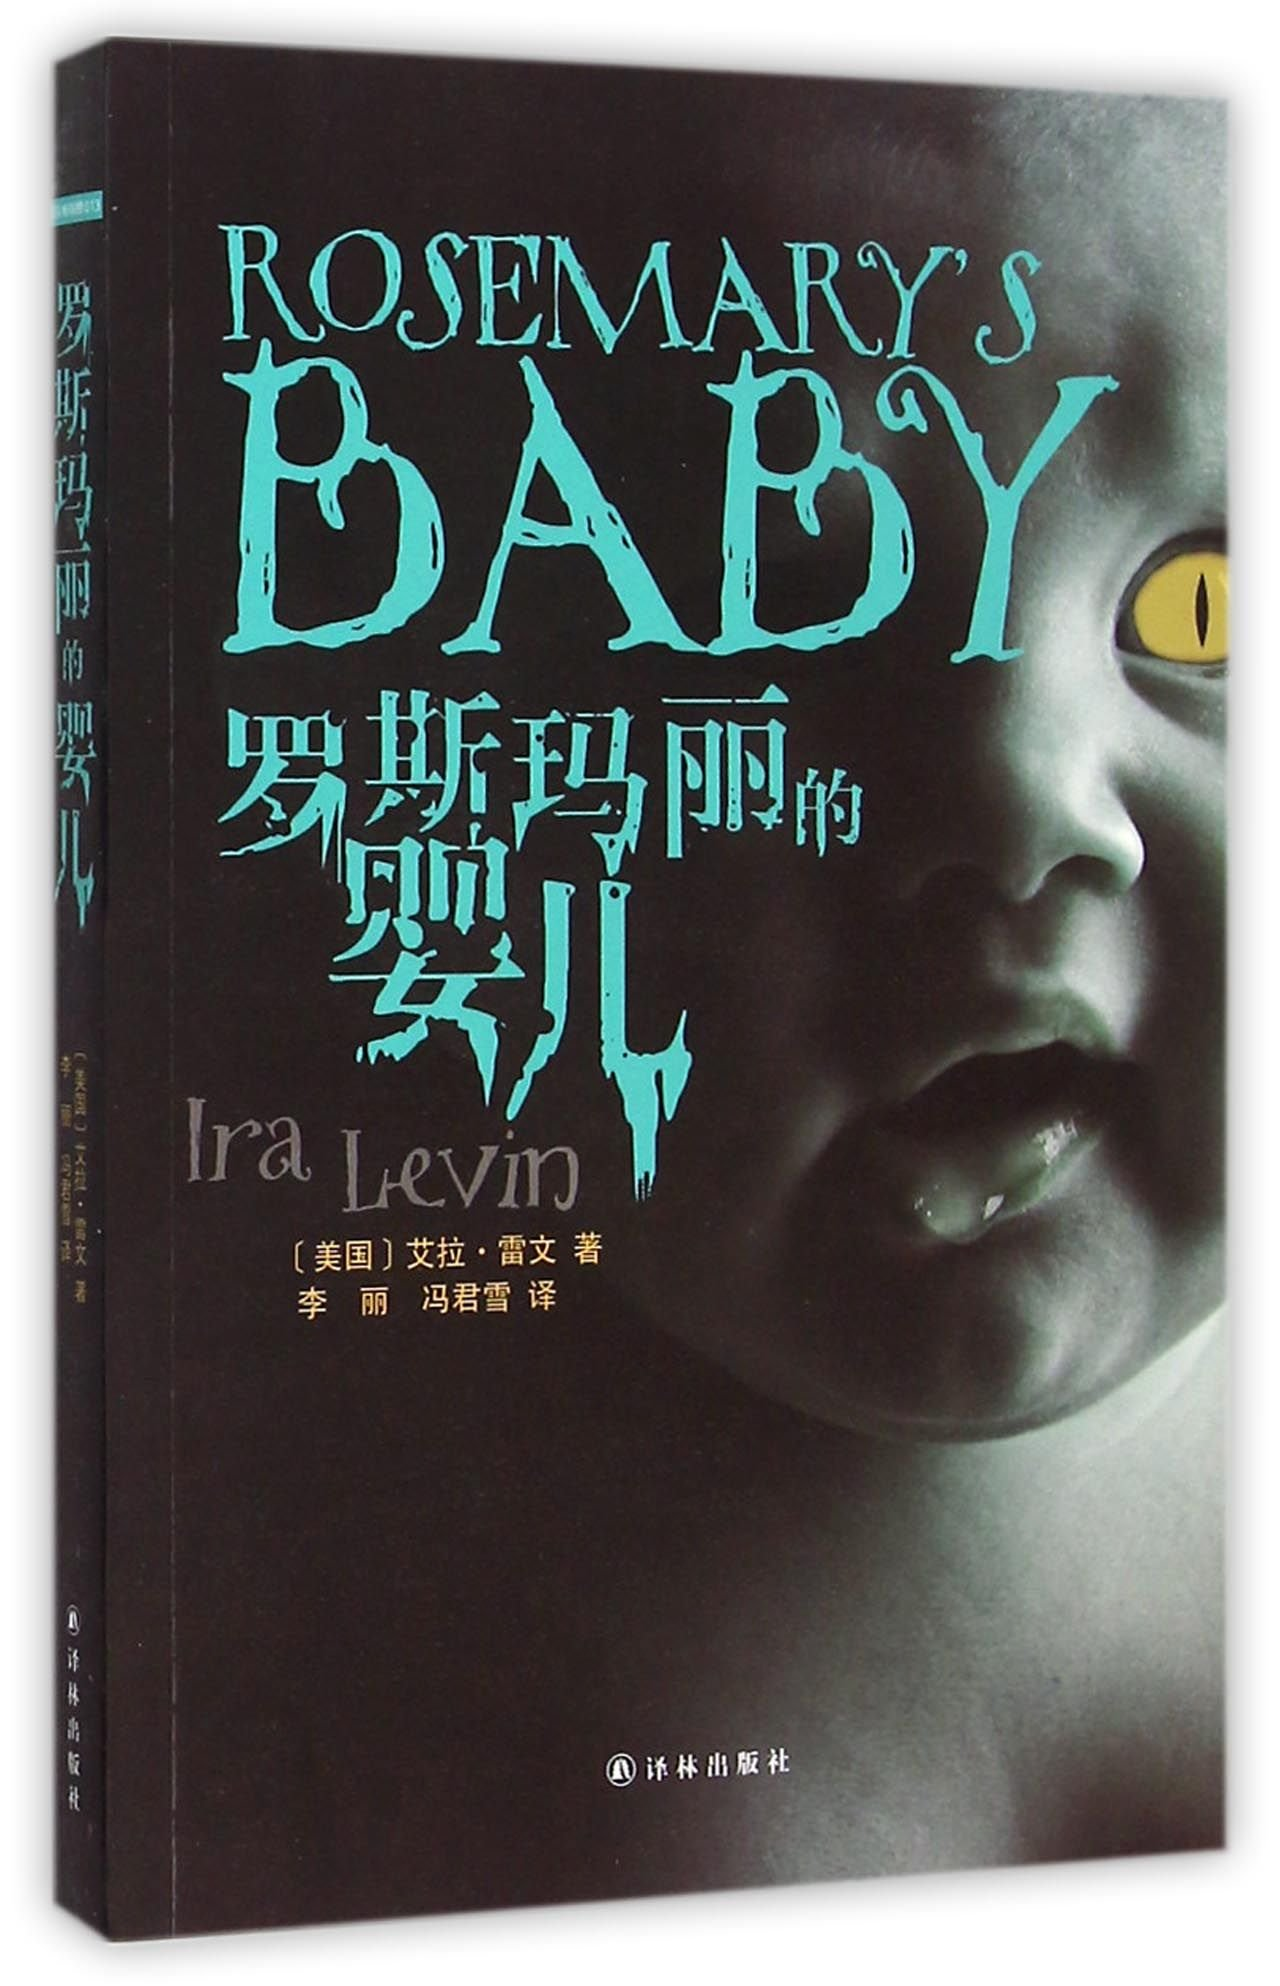 Download Rosemary's baby (Chinese Edition) pdf